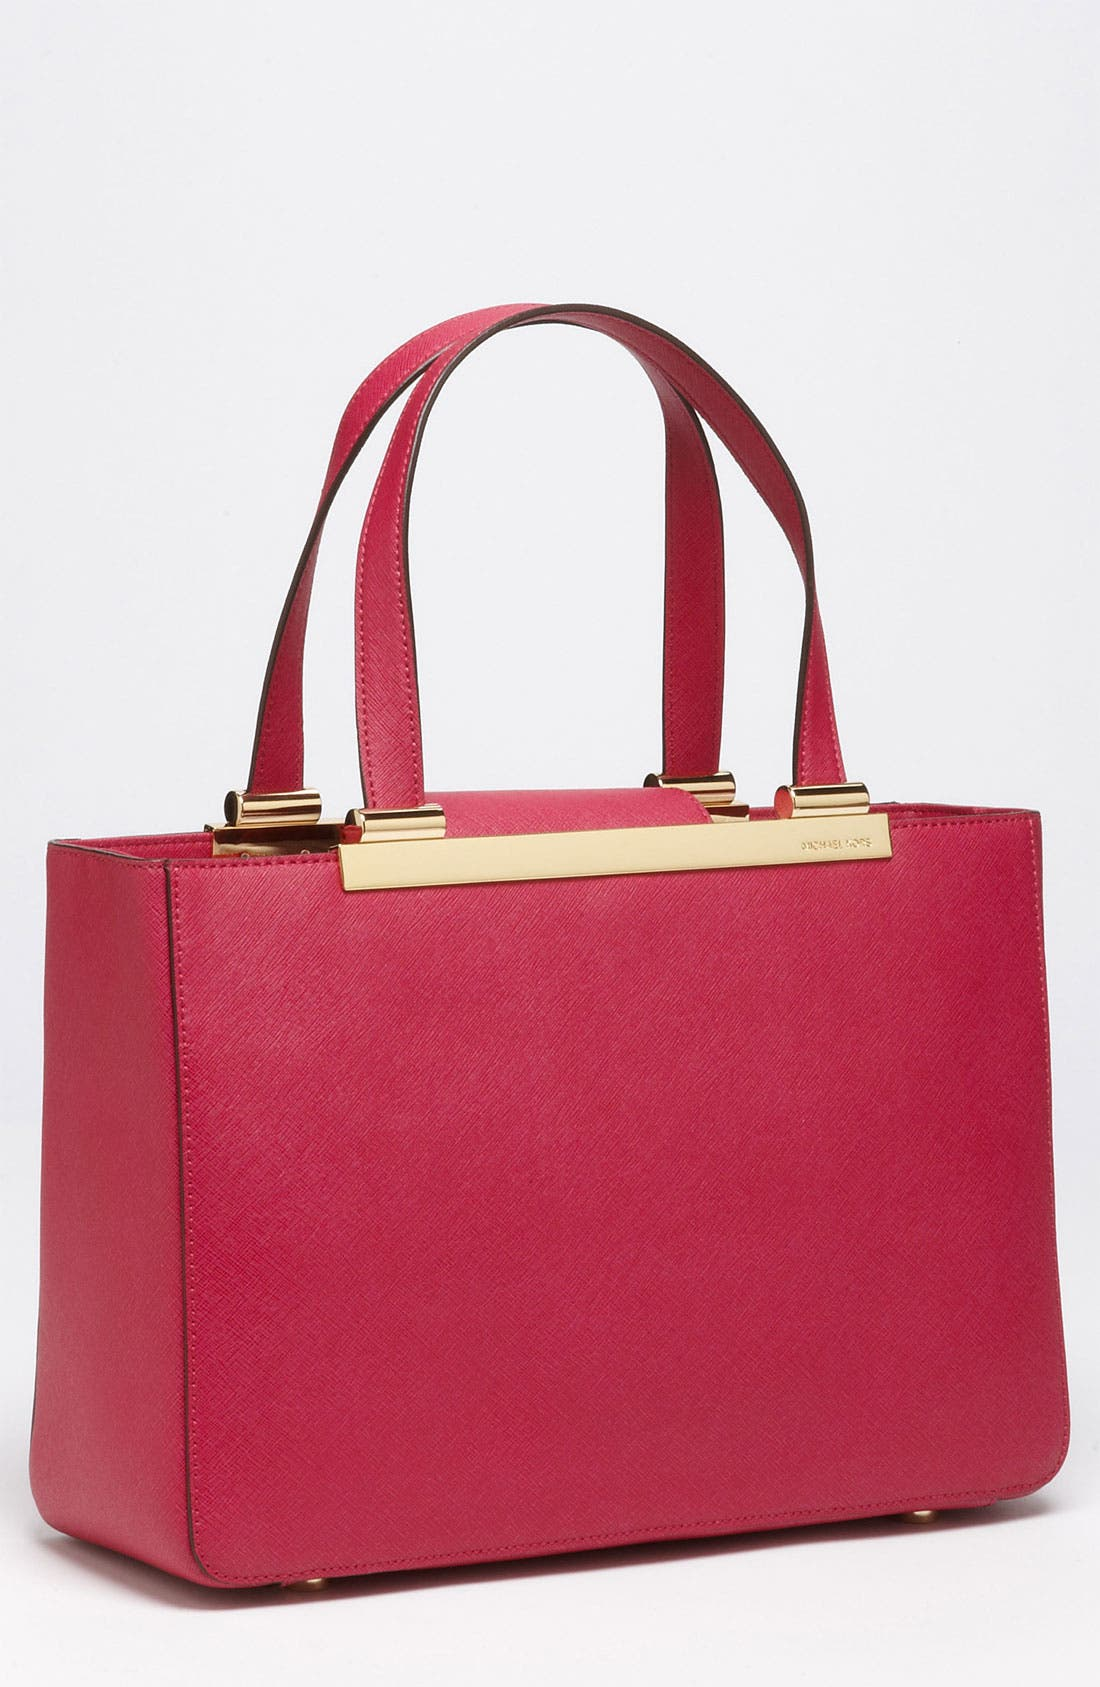 Alternate Image 1 Selected - MICHAEL Michael Kors 'Large' Saffiano Leather Tote